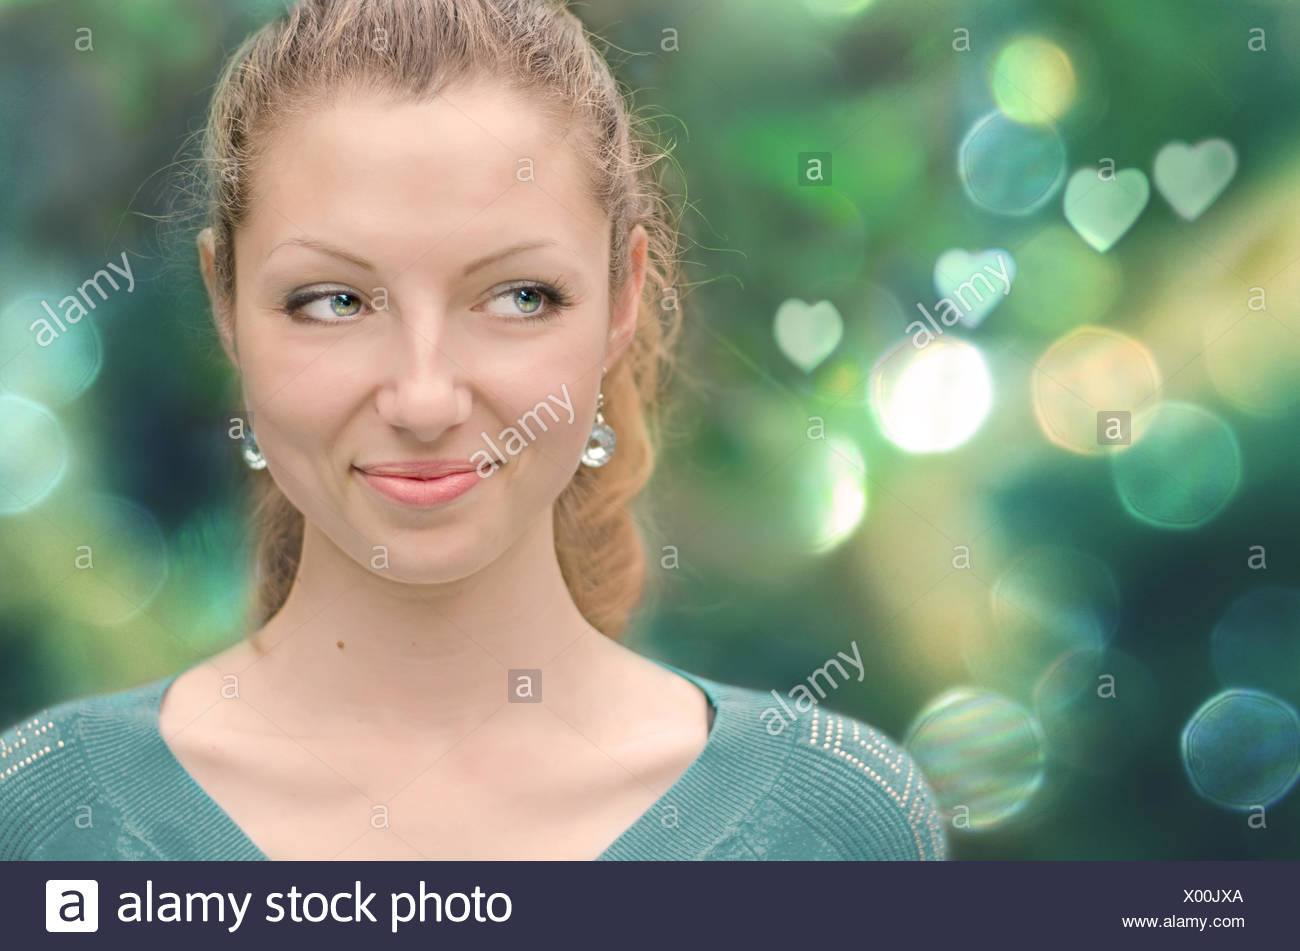 Portrait of a smiling woman - Stock Image